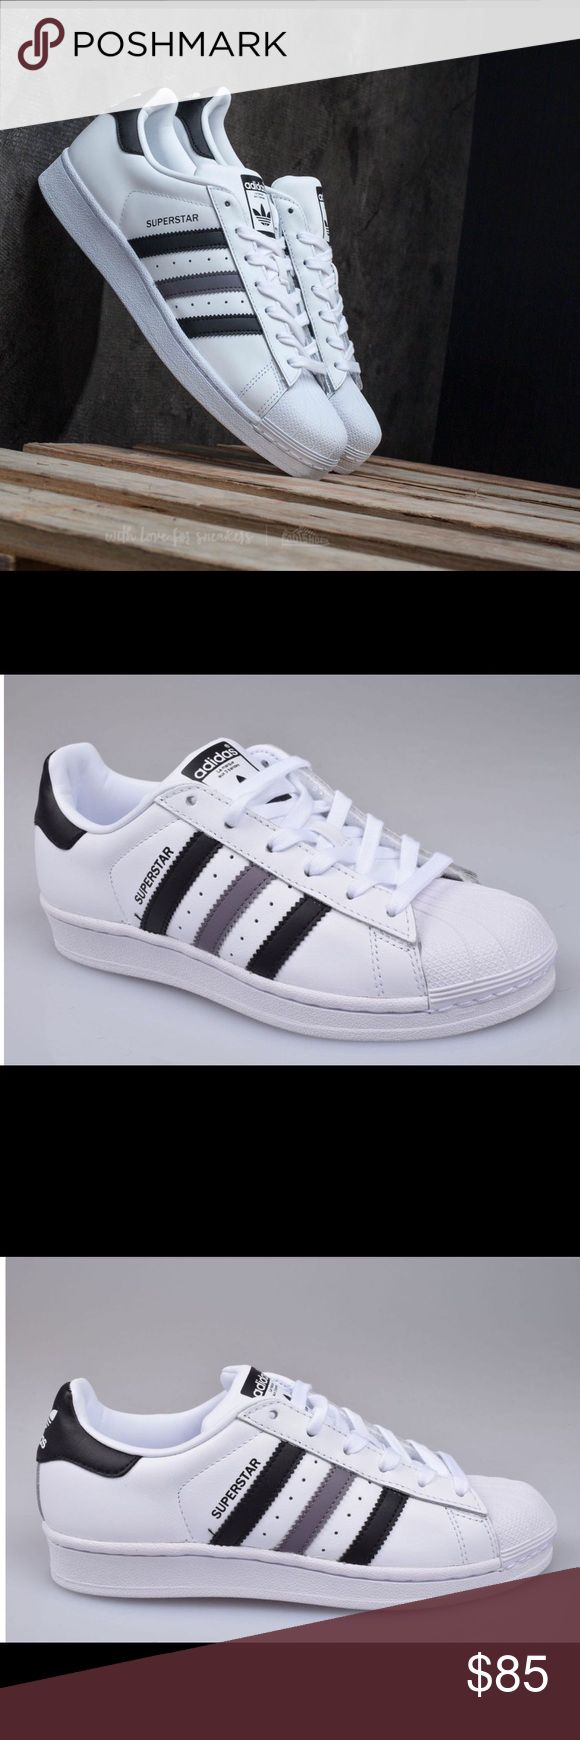 ❤Adidas Originals Superstar Men's Shoes❤ New to Culture Kings in a standout colourway, the adidas Superstar sneaker reigns supreme. The fan favourite launched in 1969 and quickly lived up to its name as NBA players laced into the now-famous shell-toe design. These men's shoes come in full grain leather with serrated 3-Stripes and a rubber cupsole.   - Full grain leather upper  - Rubber shell toe  - Synthetic leather lining  - Herringbone-pattern rubber cupsole  New Without Box Adidas Shoes…